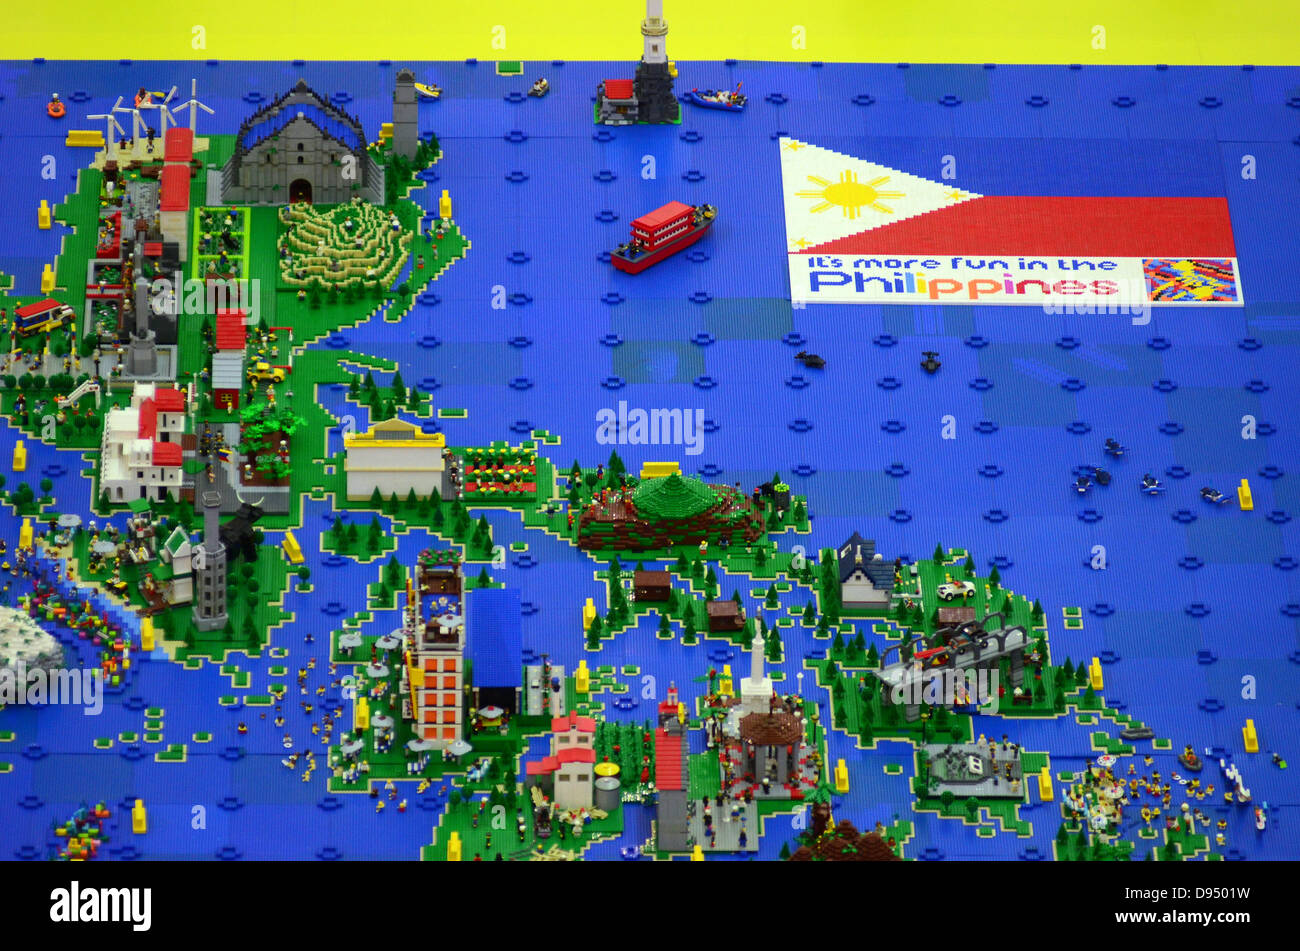 Davao City Philippines 11th June 2013 Philippine map and